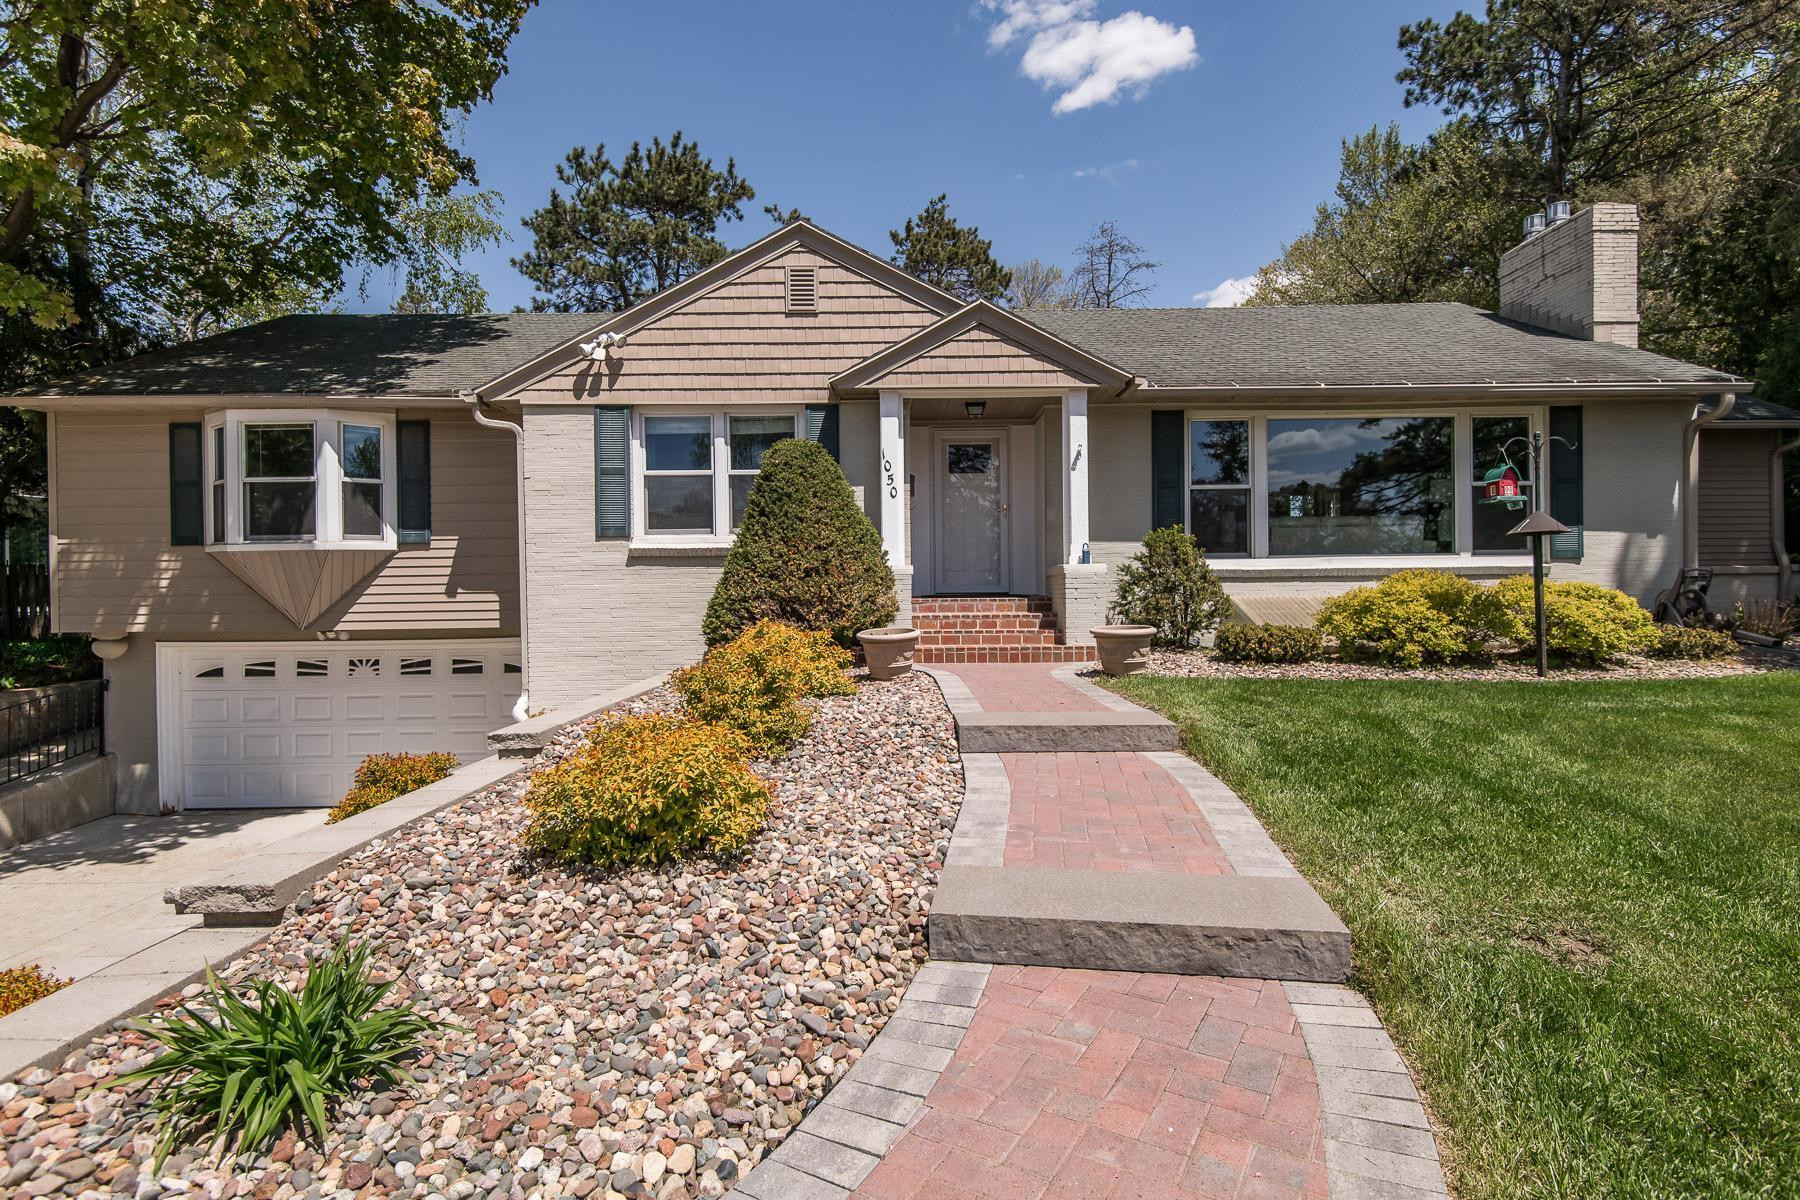 Shaker siding accents, great walk-ways and retaining walls (new in 2020), and nice landscaping gives this beautiful home great curb appeal!